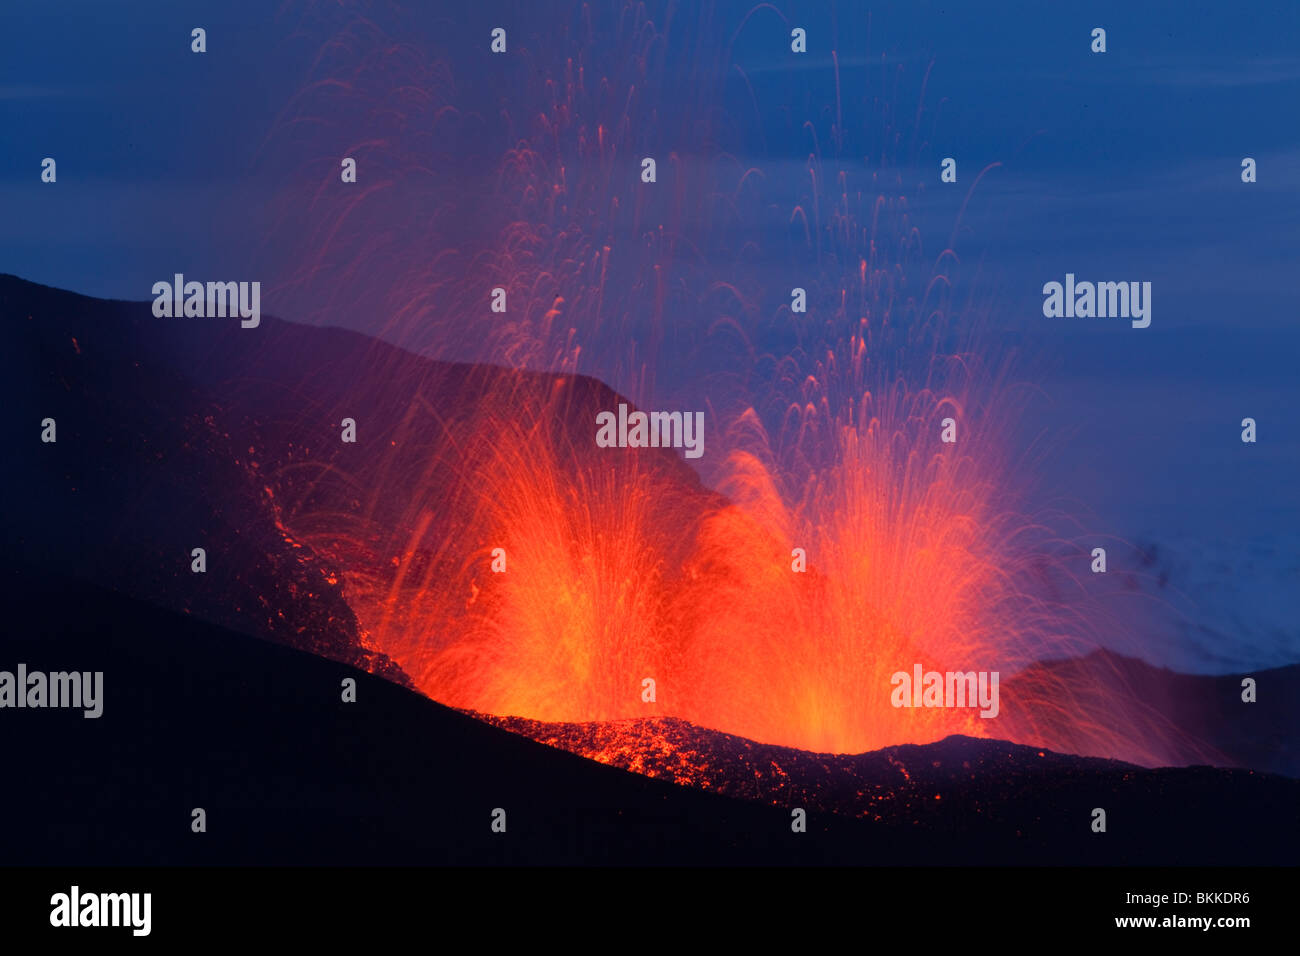 Lava fountains during start of Iceland Eyjafjallajökull volcanic eruption at dawn 30 March 2010 - Stock Image